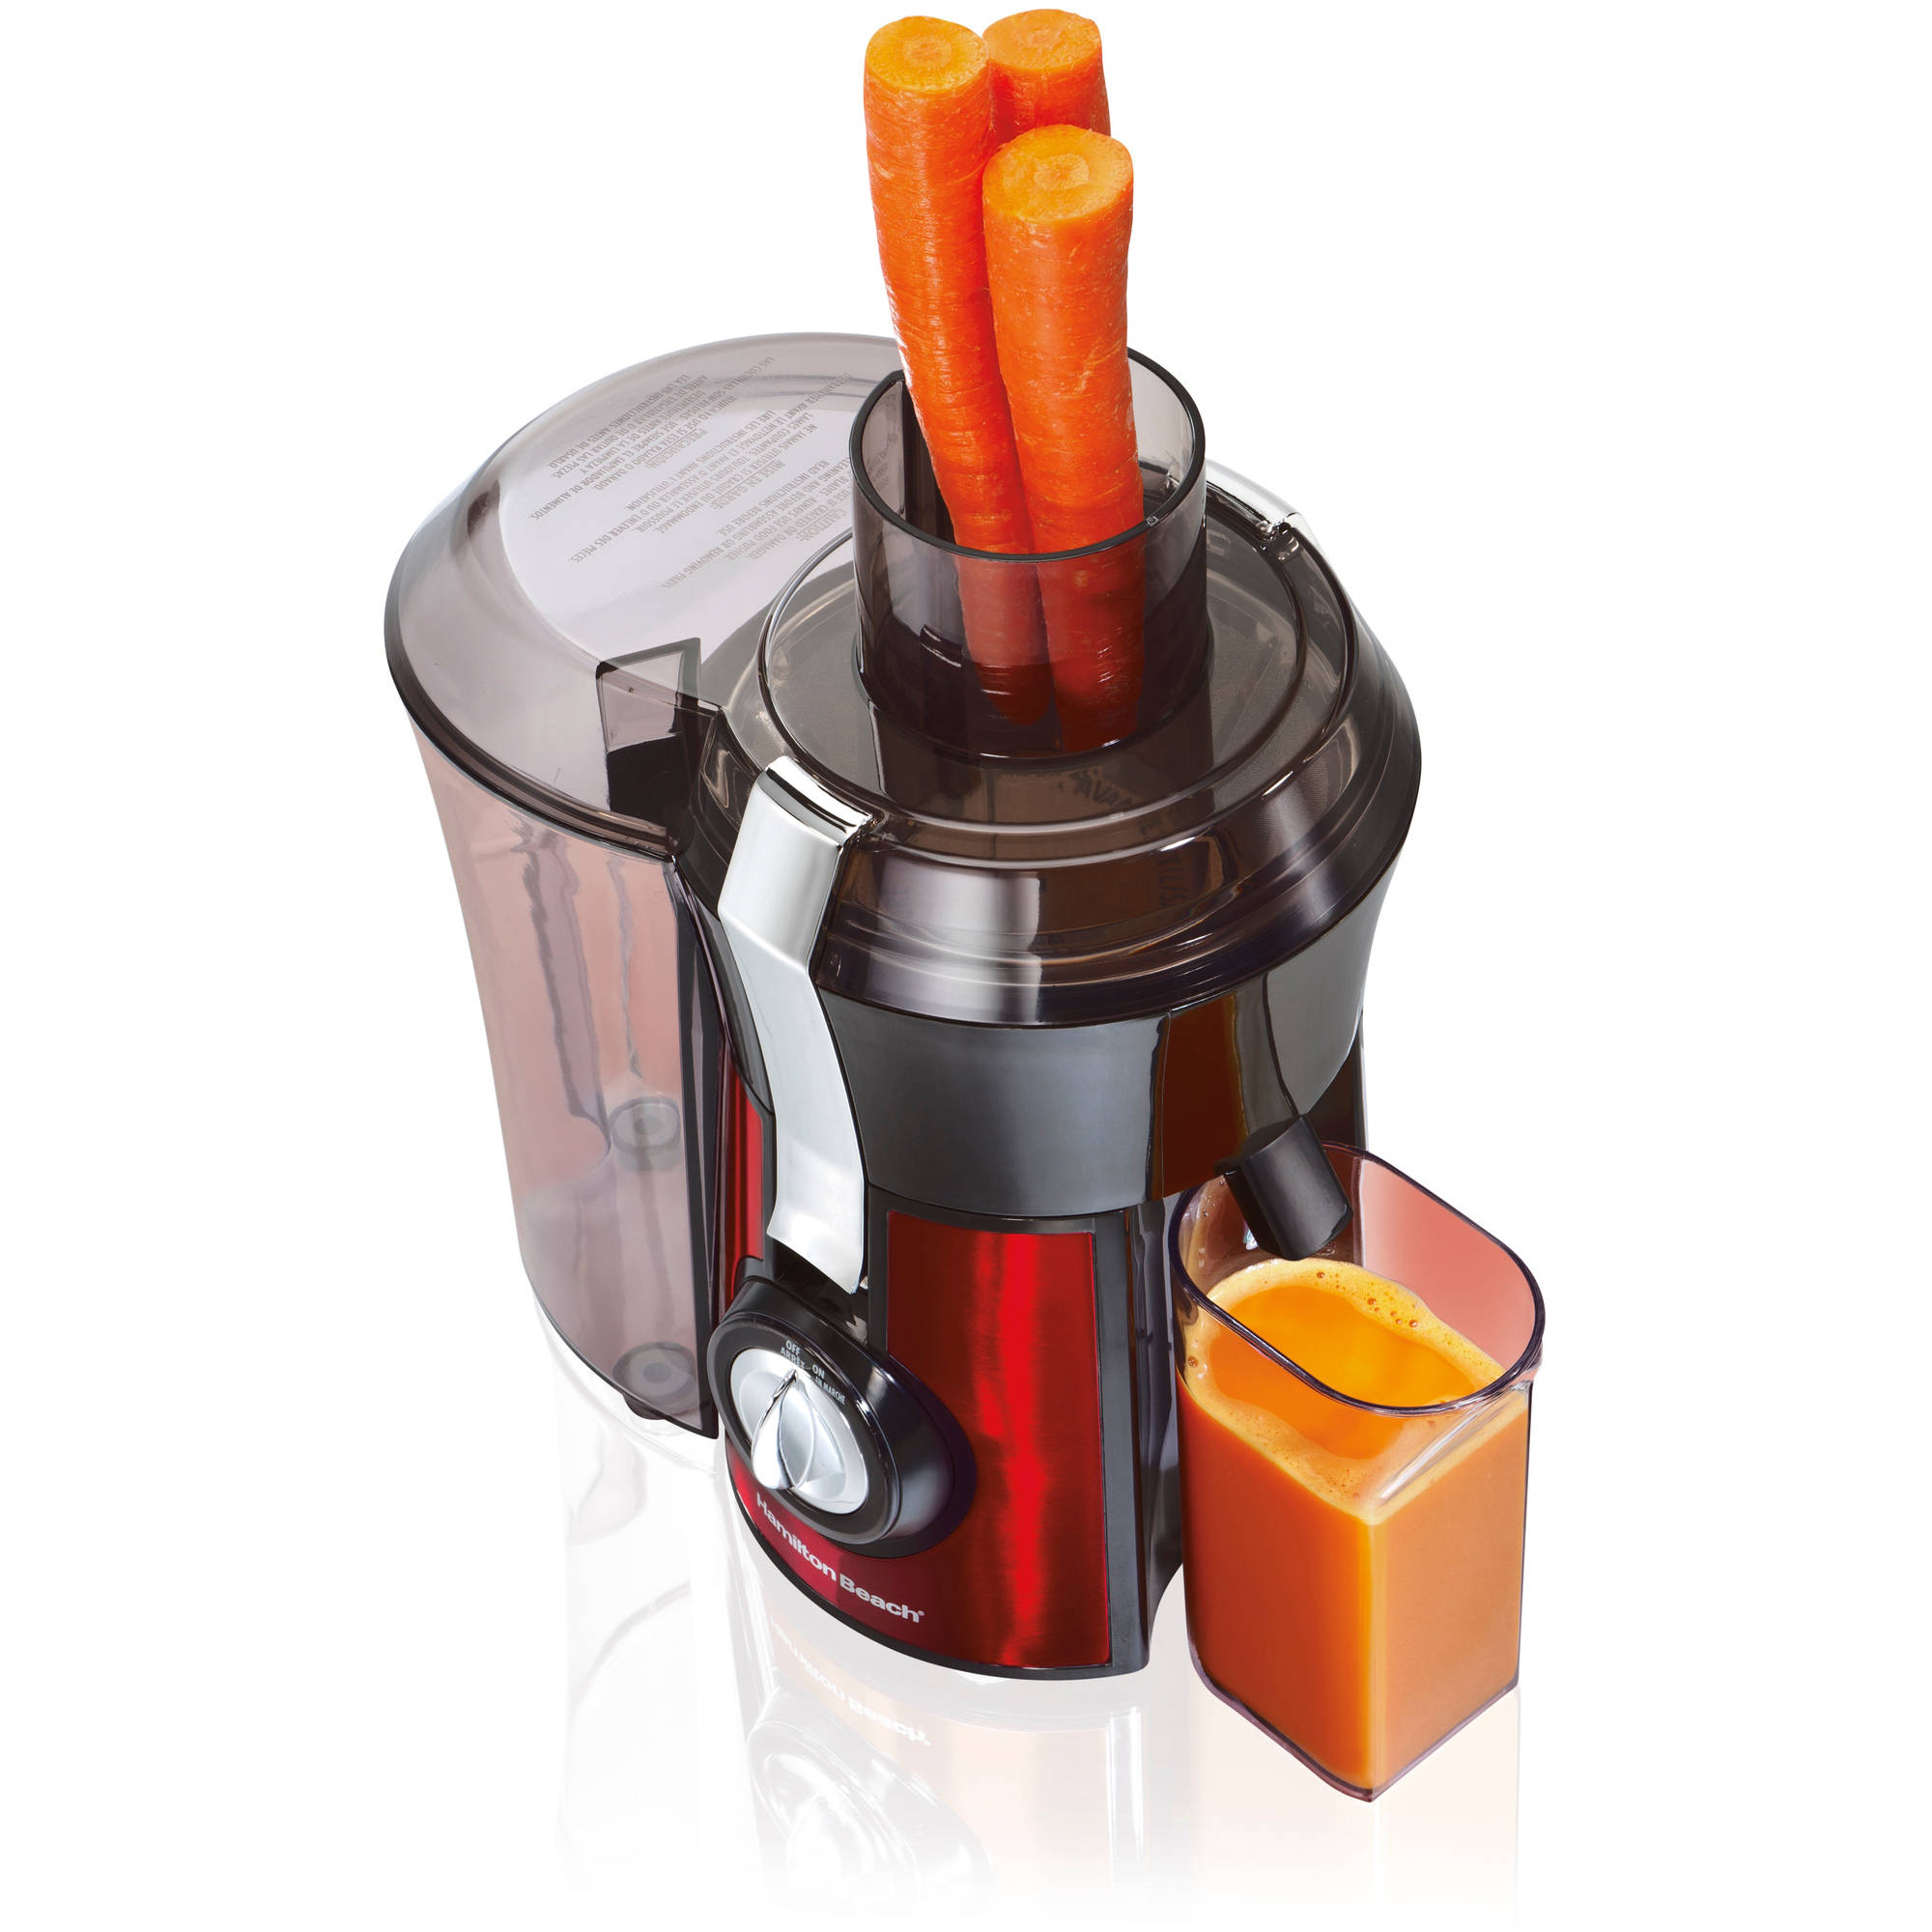 Hamilton Beach Big Mouth Juice Extractor | Model# 67606-MX